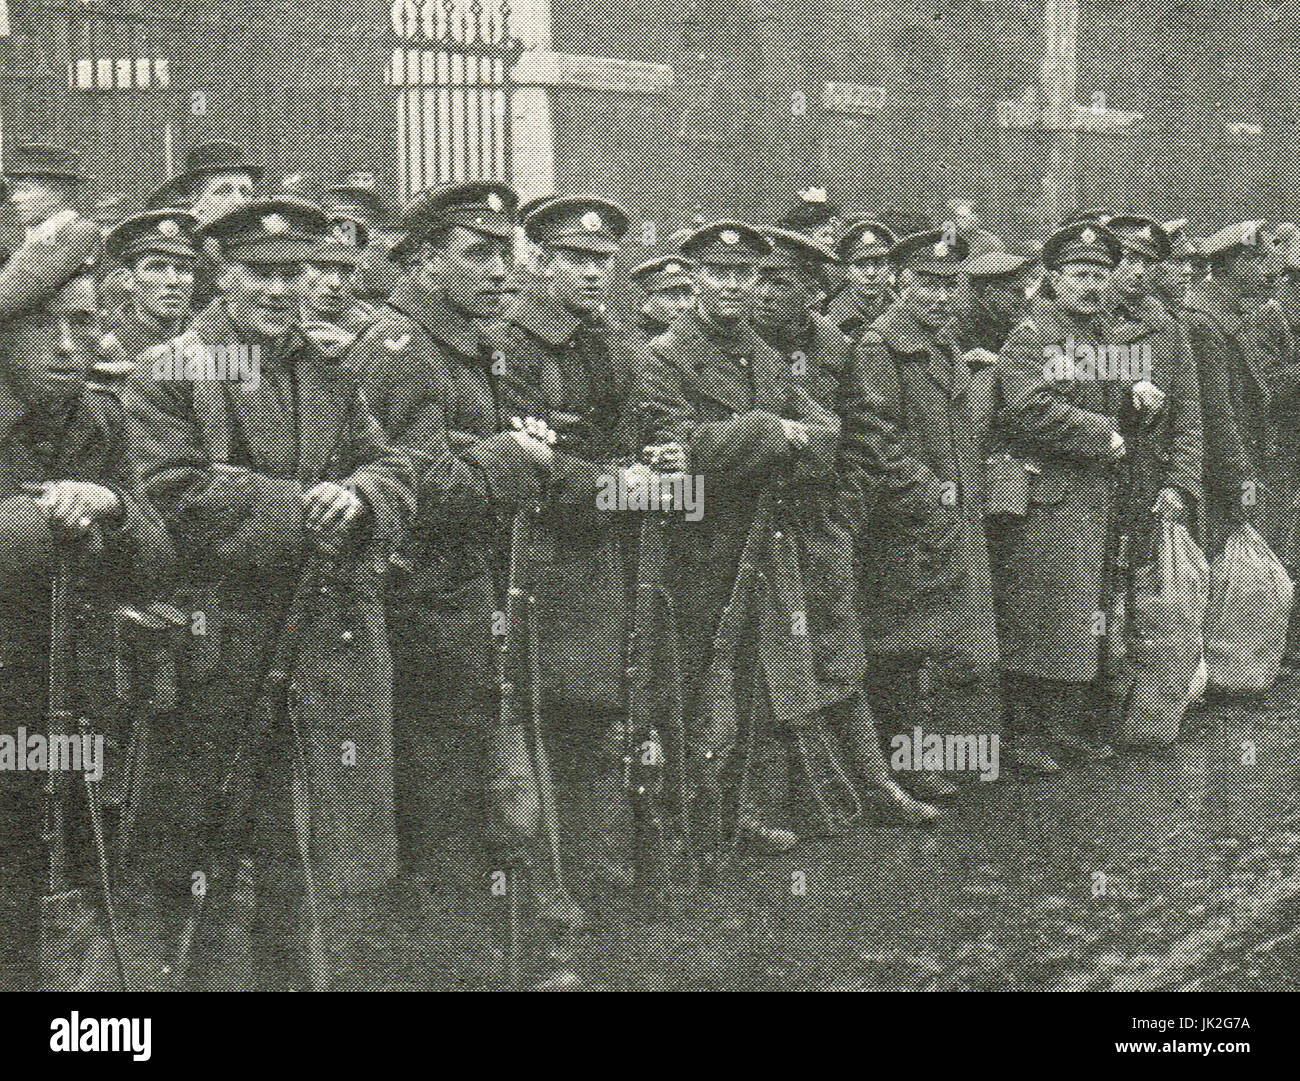 March to Whitehall, demobilisation protest by soldiers, 7 January, 1919 - Stock Image